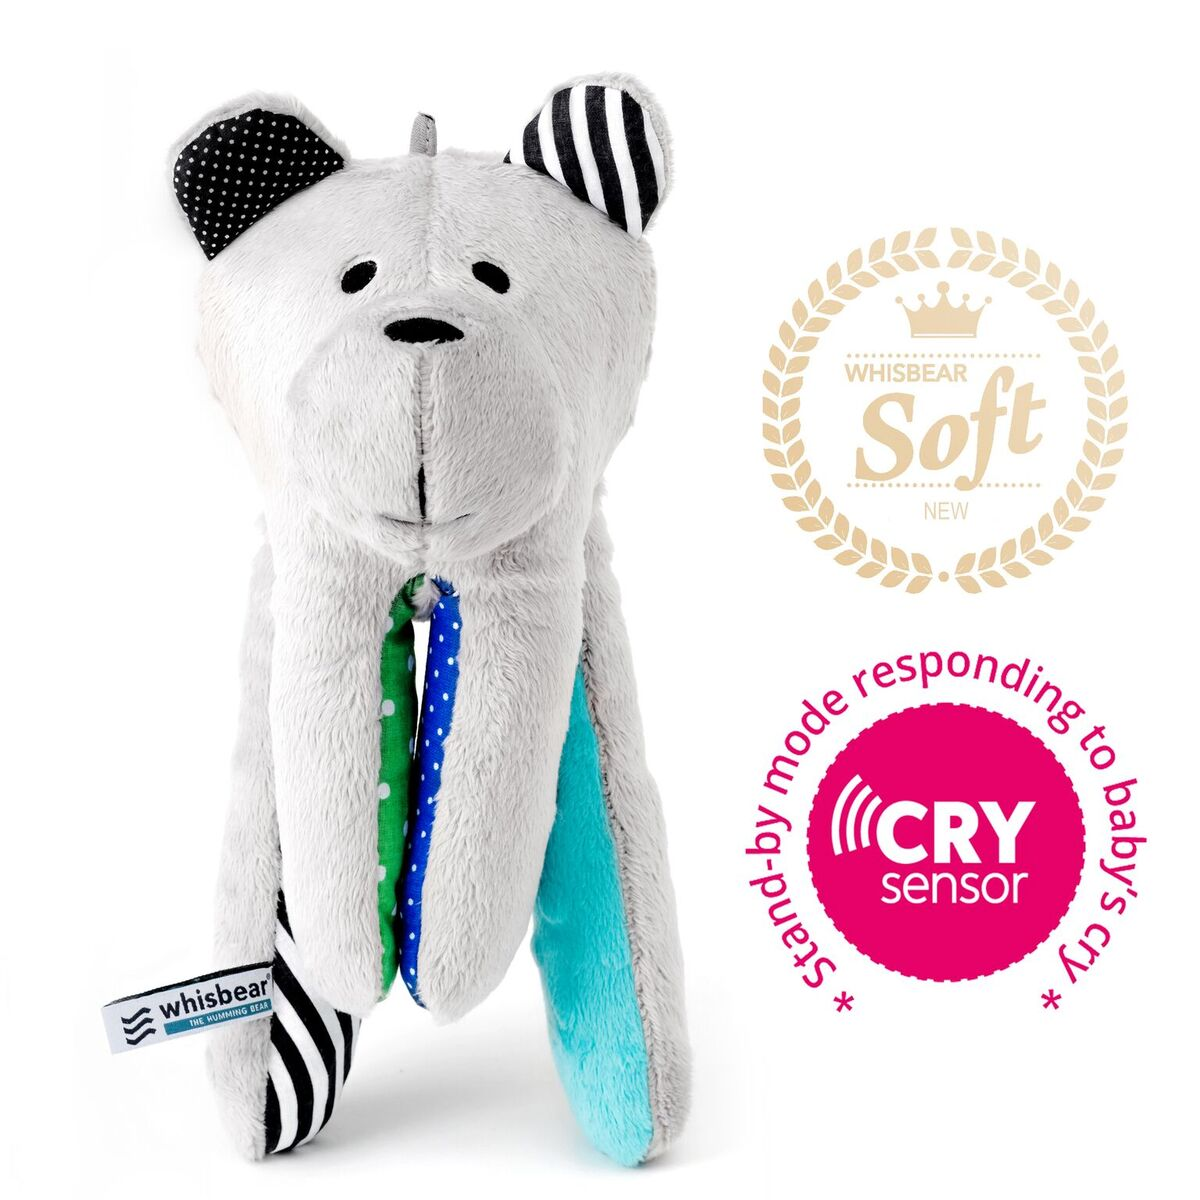 Whisbear The Humming Bear CRYsensor turquoise